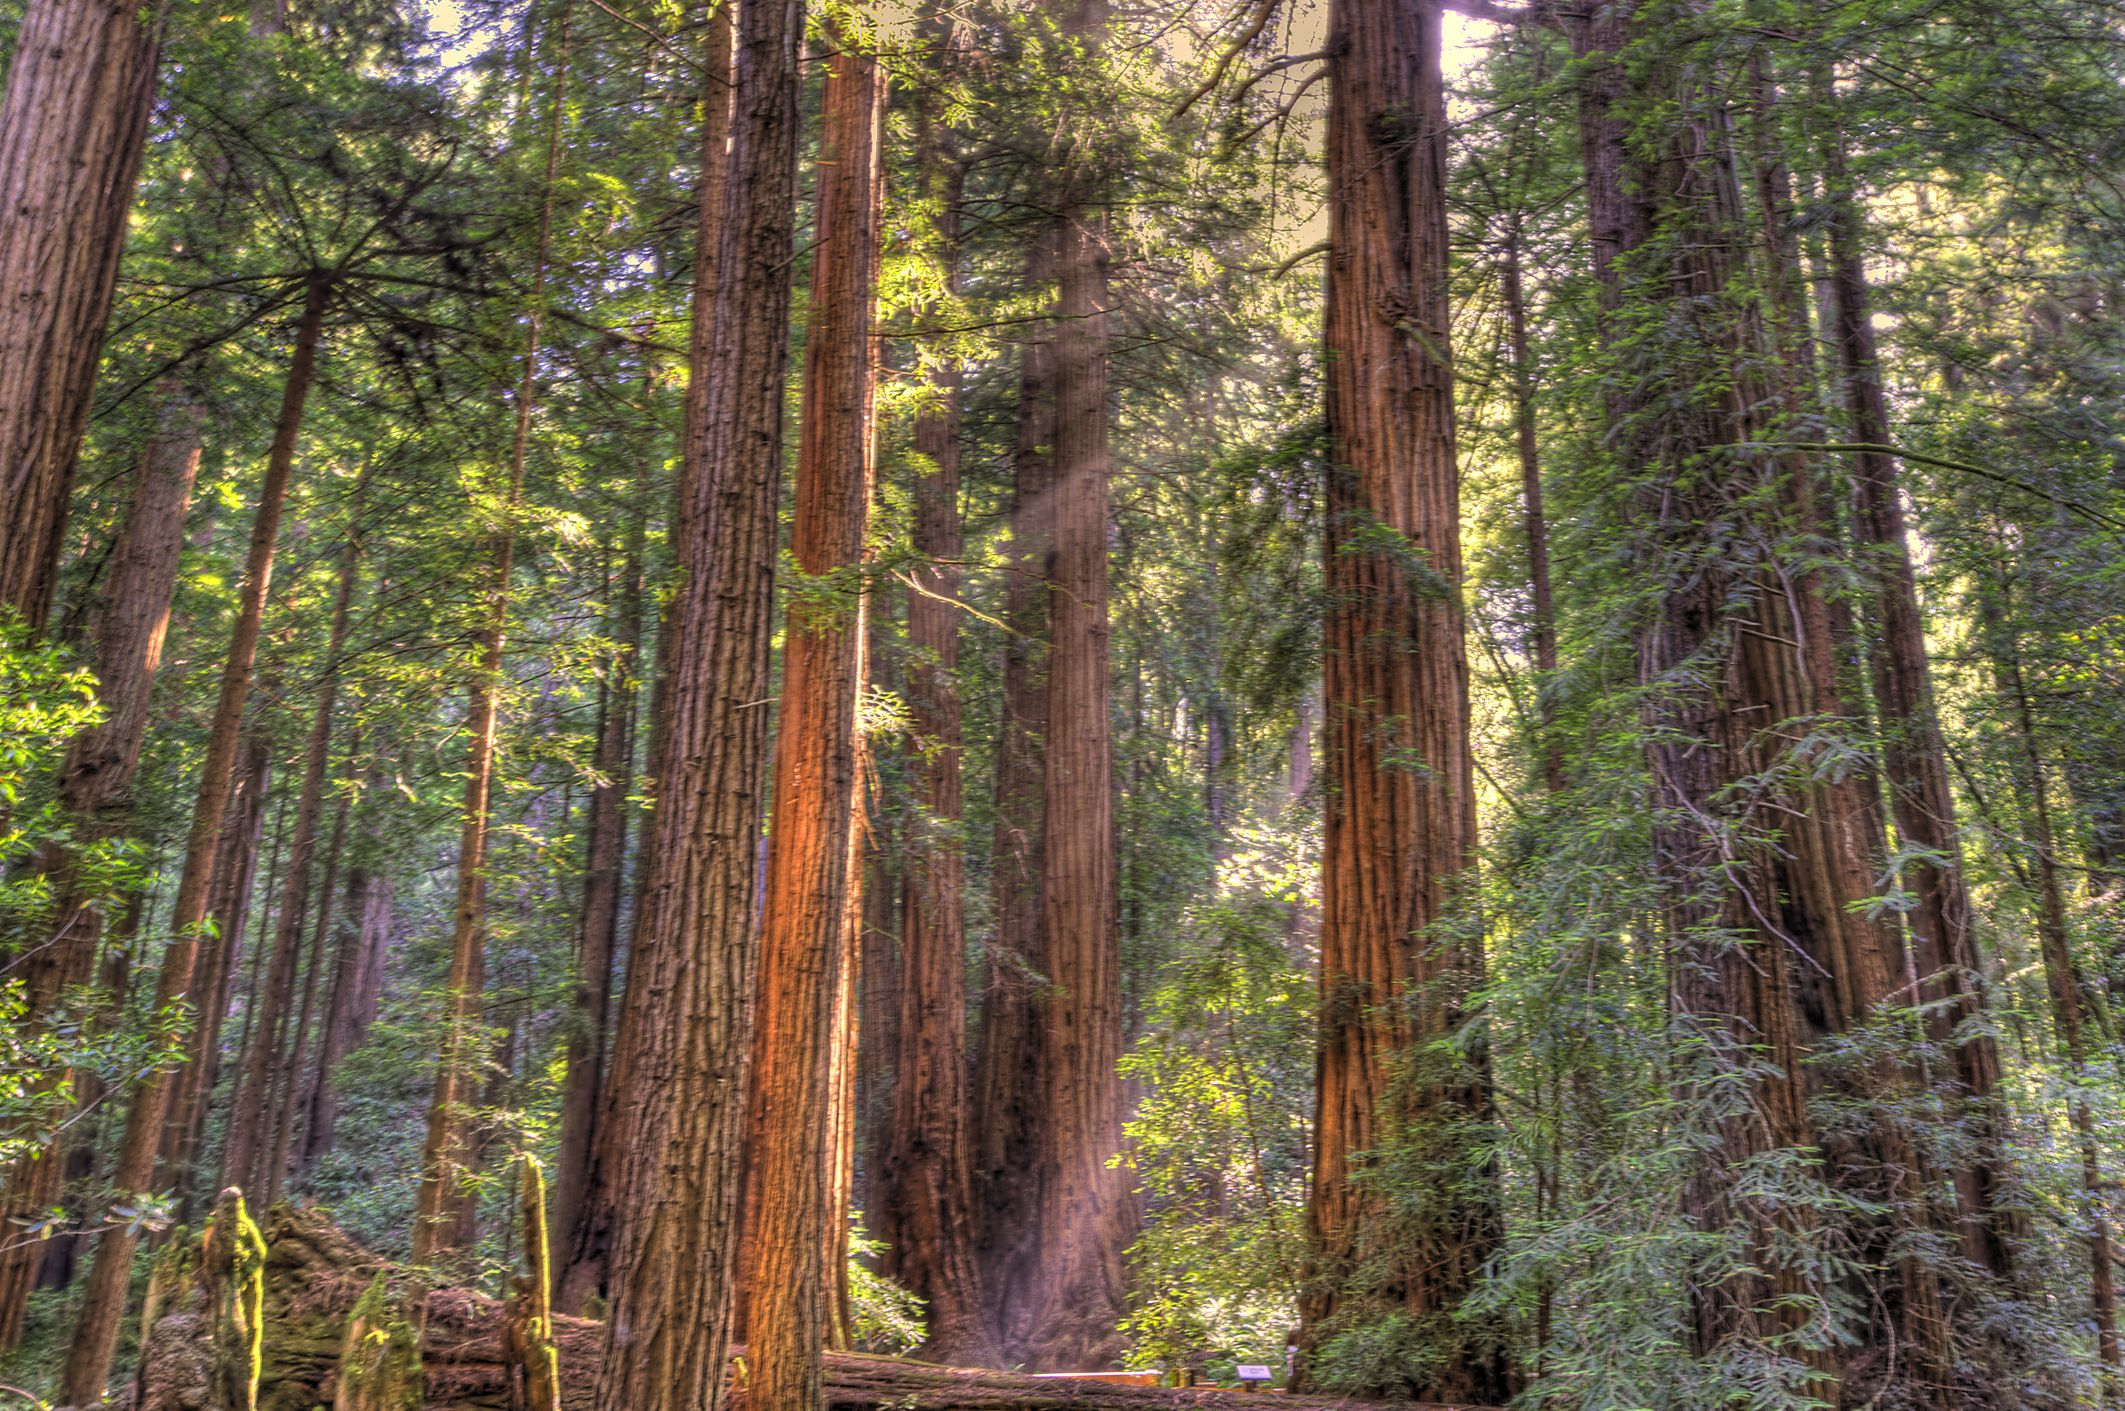 Giant redwoods in Muir Woods National Forest, California.